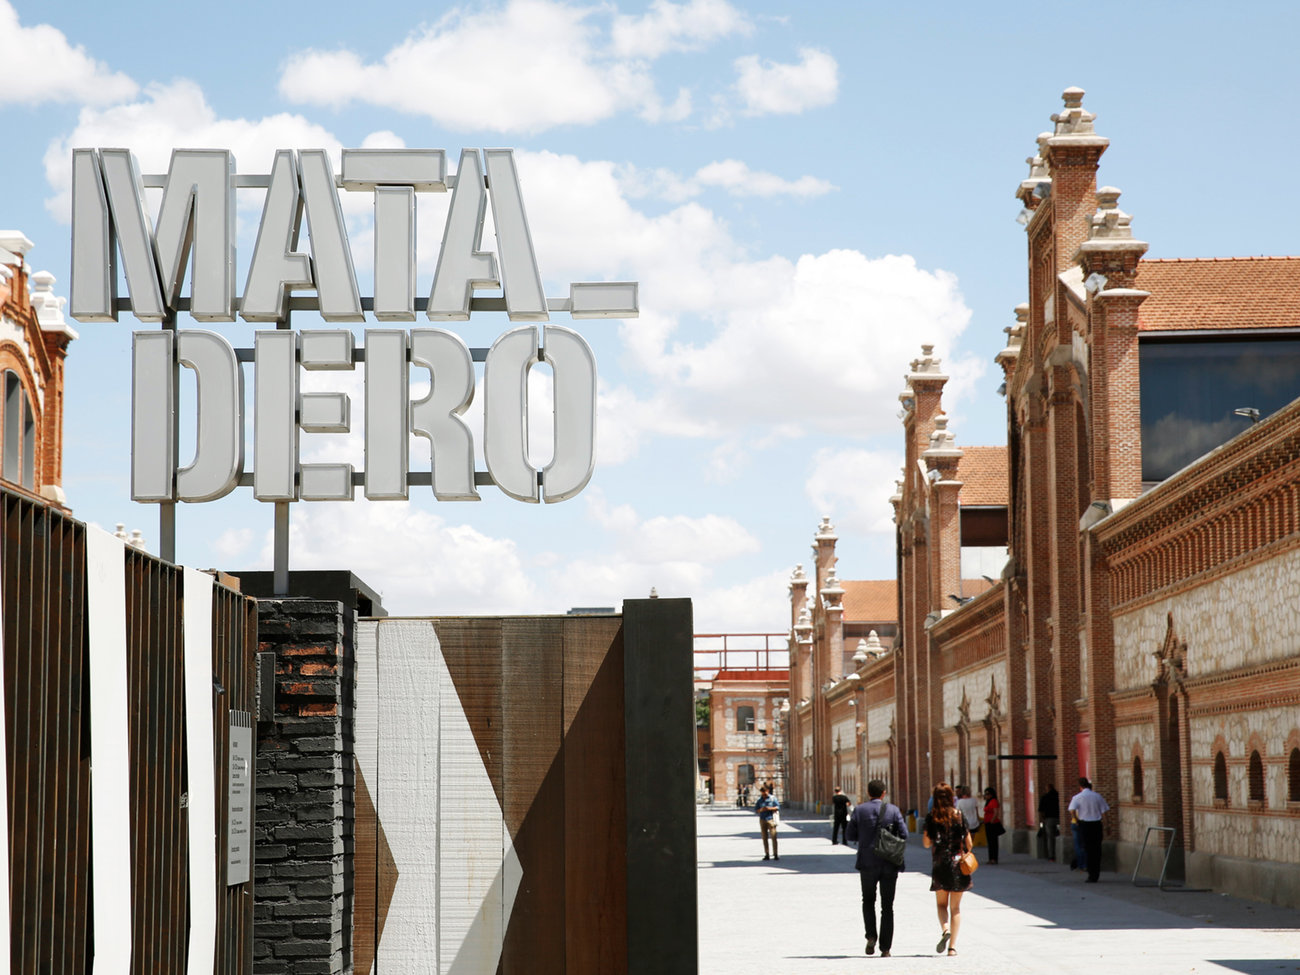 Matadero Madrid Art Center